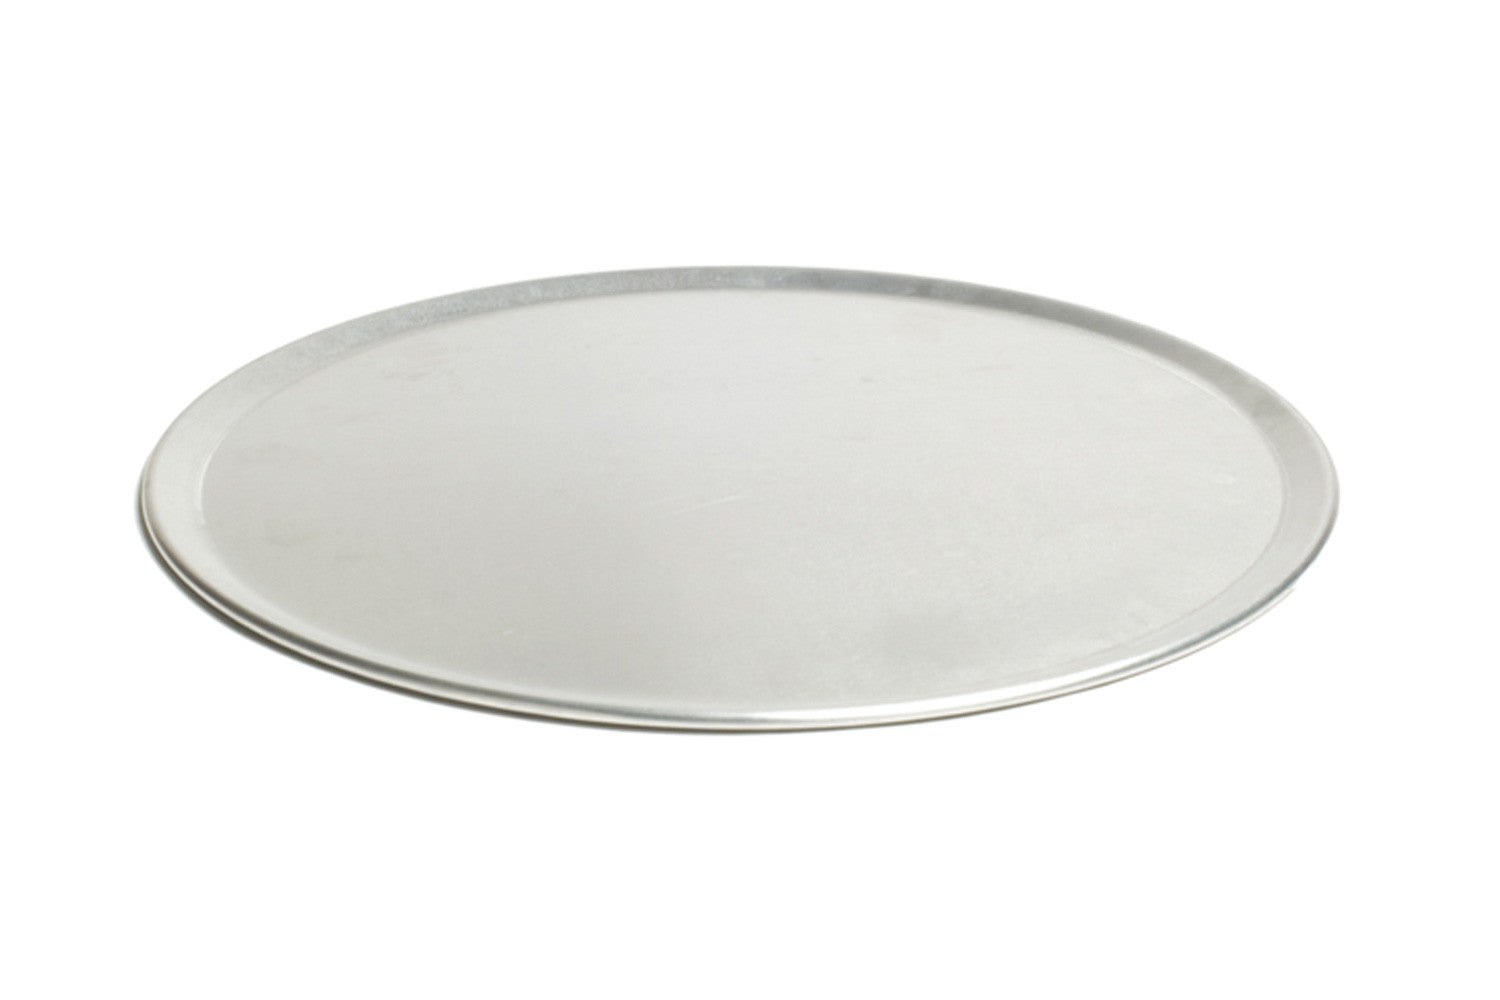 Pizzacraft Stovetop Pizza Oven Aluminum Pizza Pan Pizzacraft